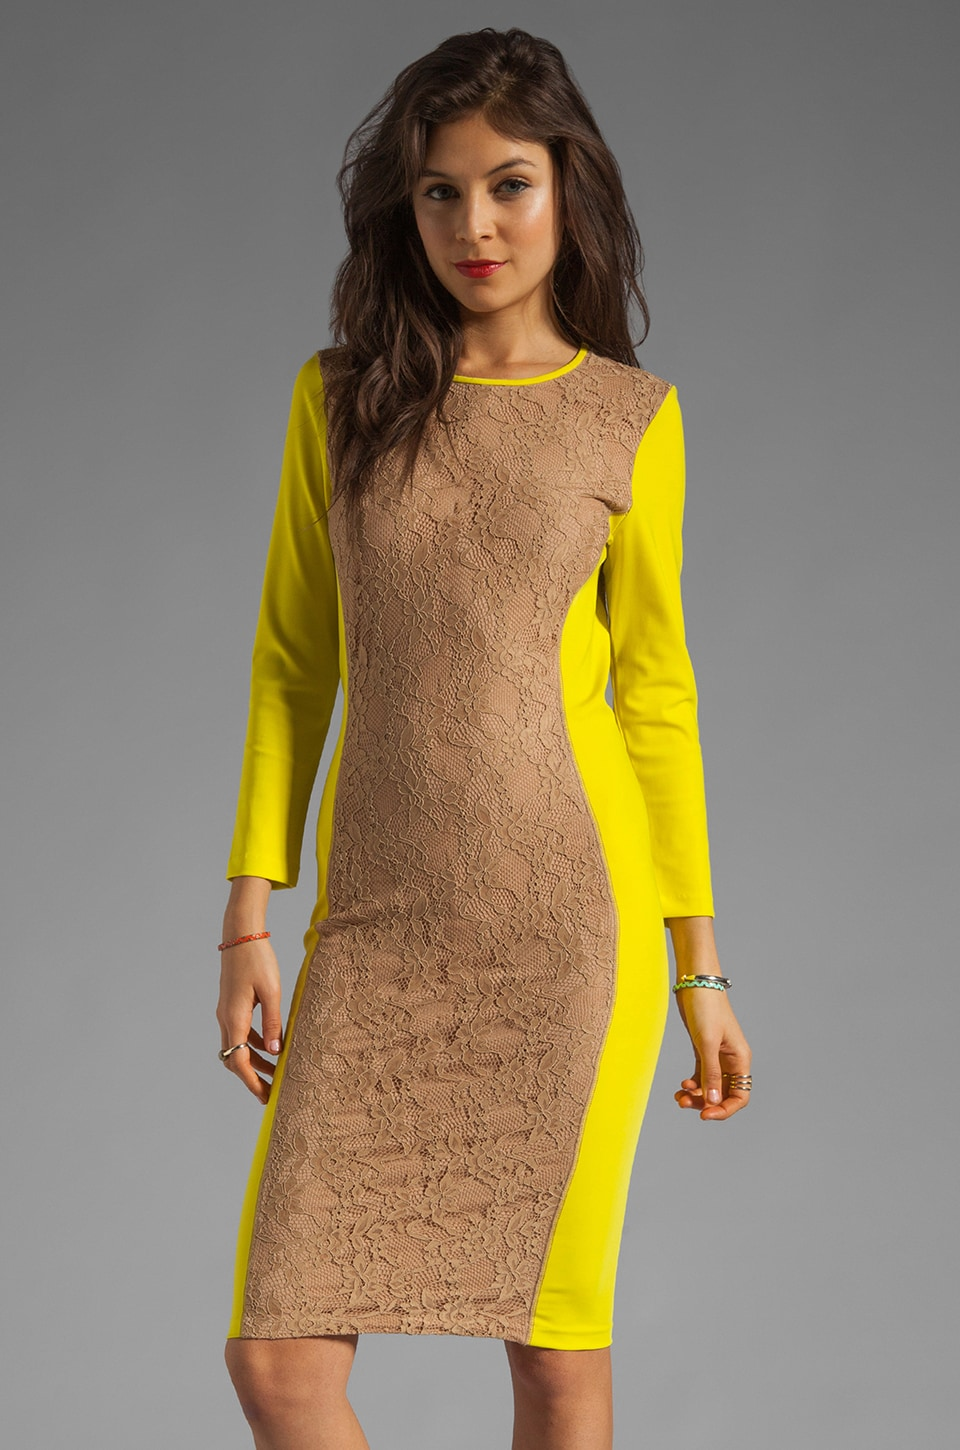 By Malene Birger Smooth Interlock Coralla Dress in Neon Yellow and Cafe Latte